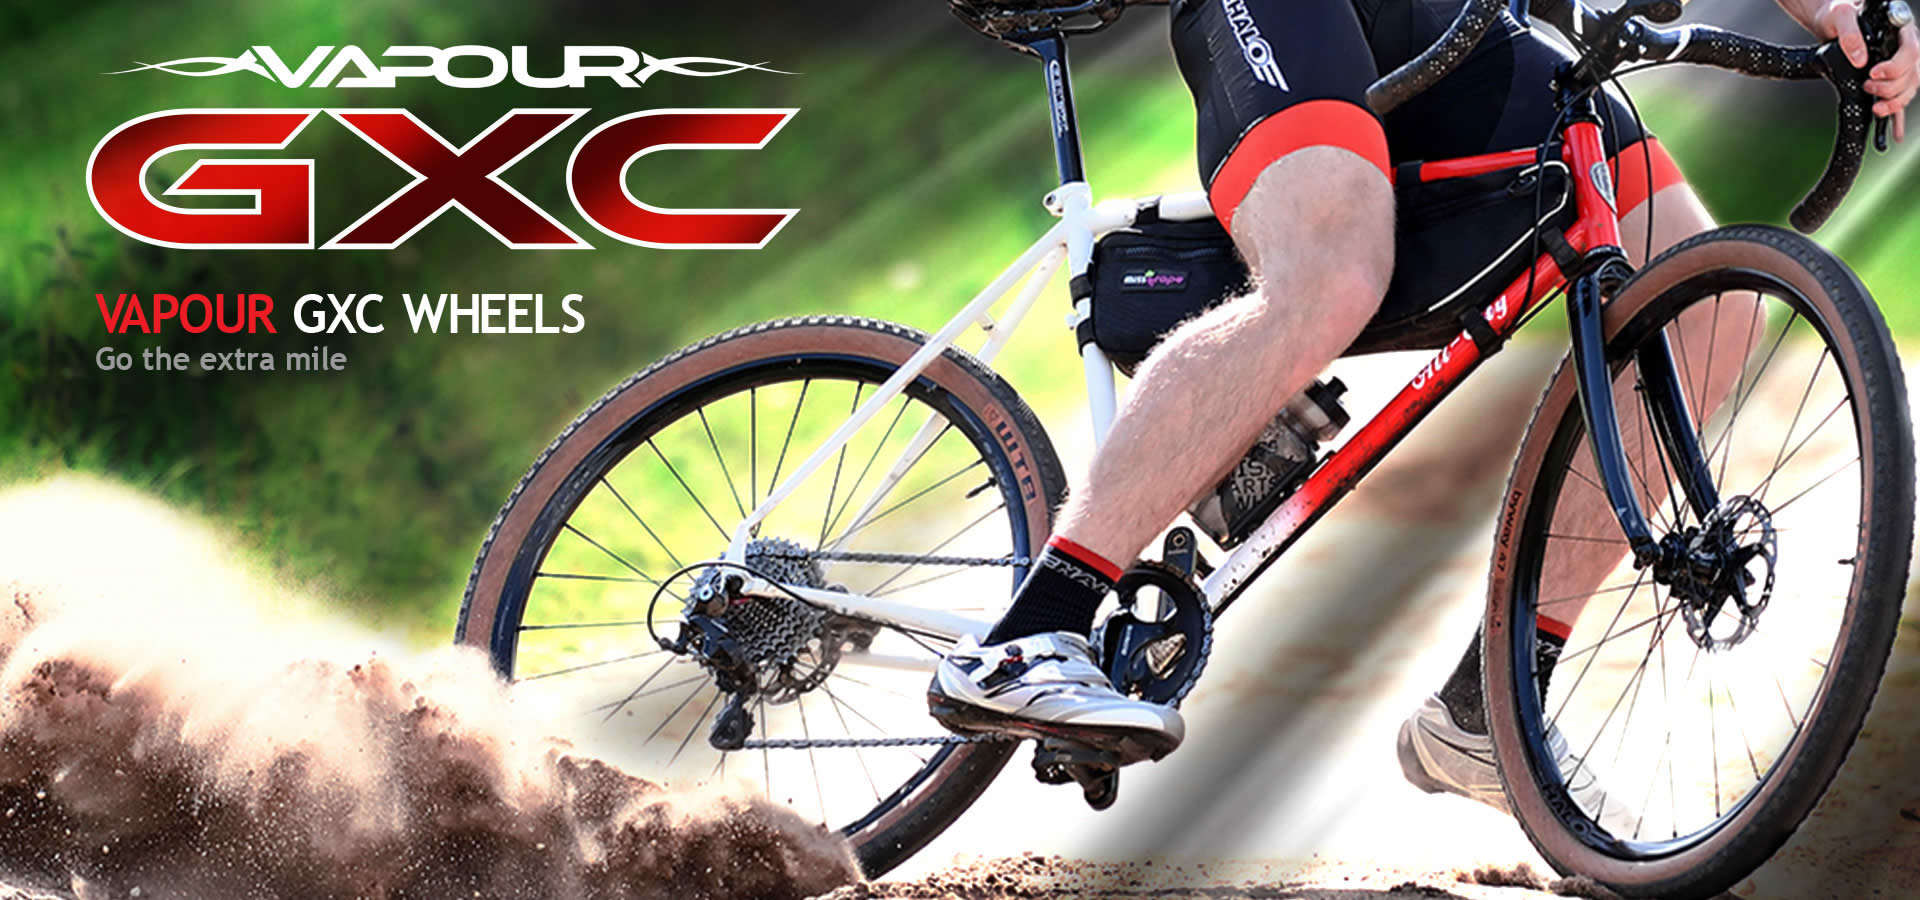 Developed in the UK, Ridden everywhere | Halo Wheels